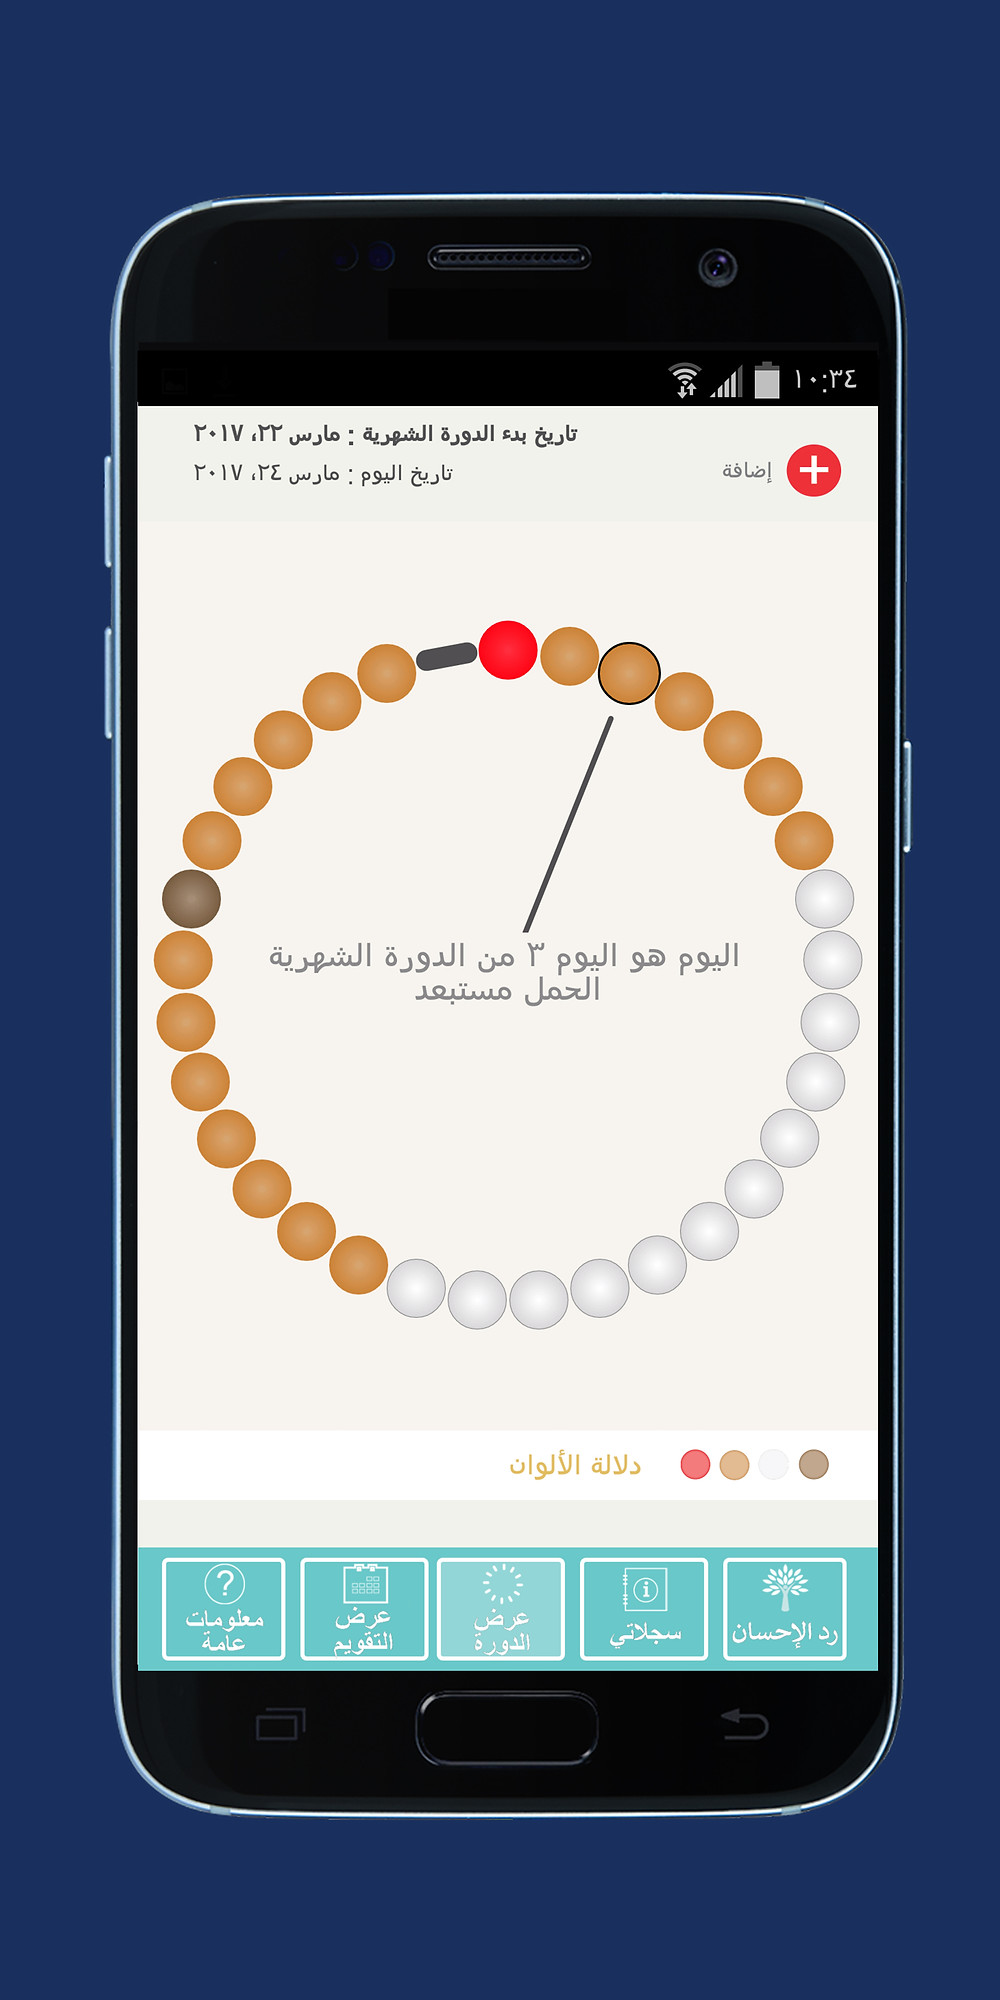 CycleBeads Android App Now Available in Arabic